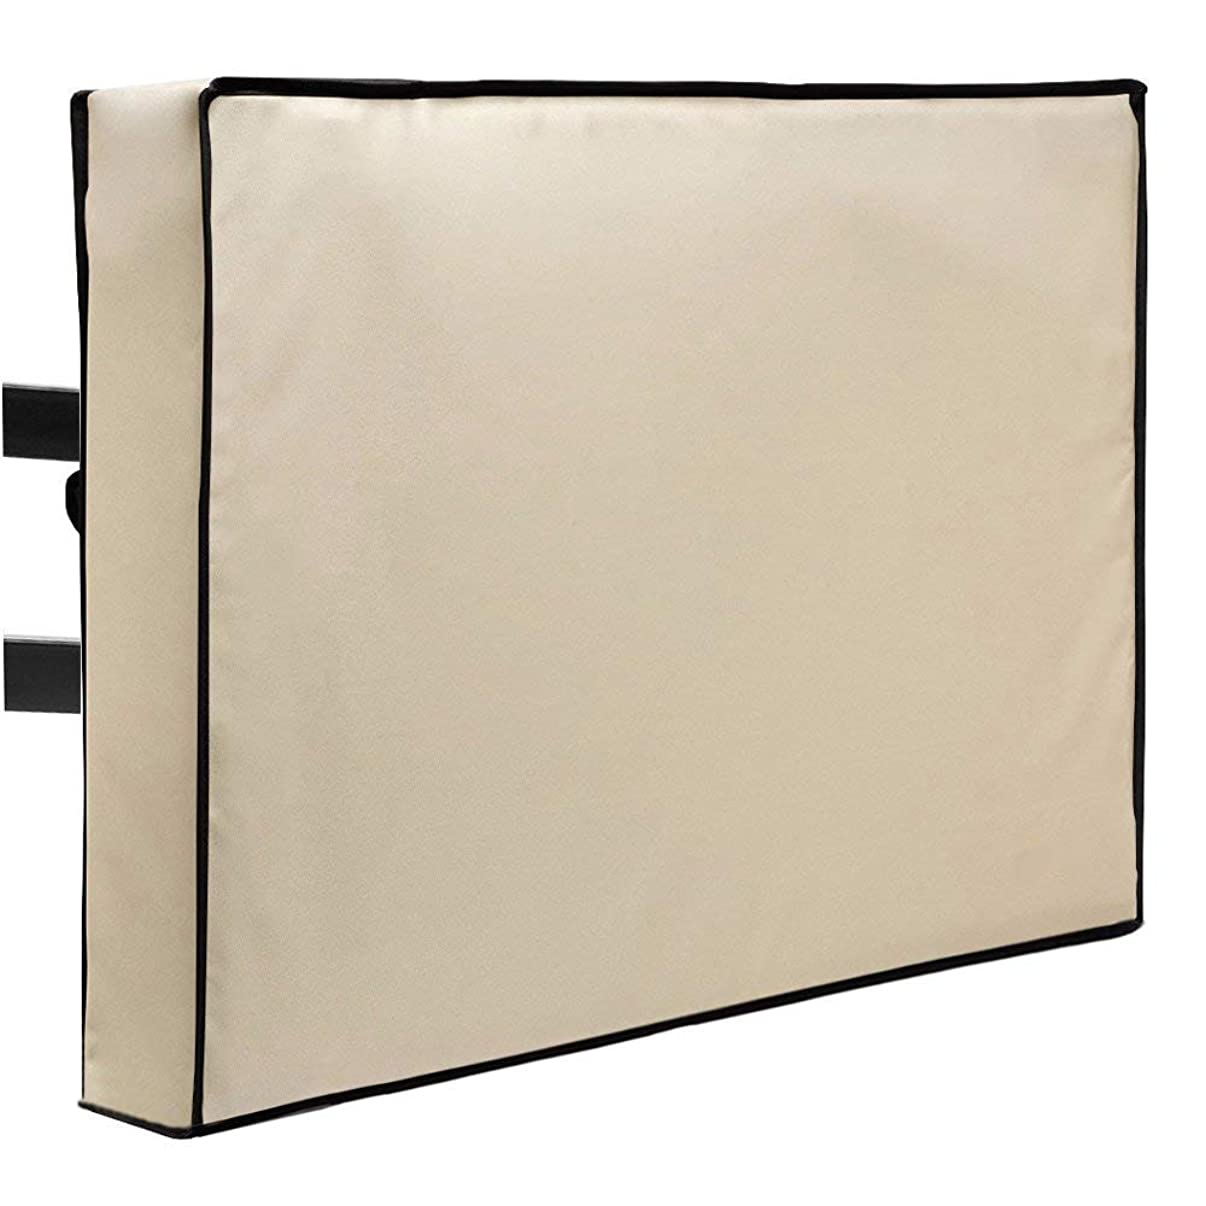 Outdoor TV Cover, 55